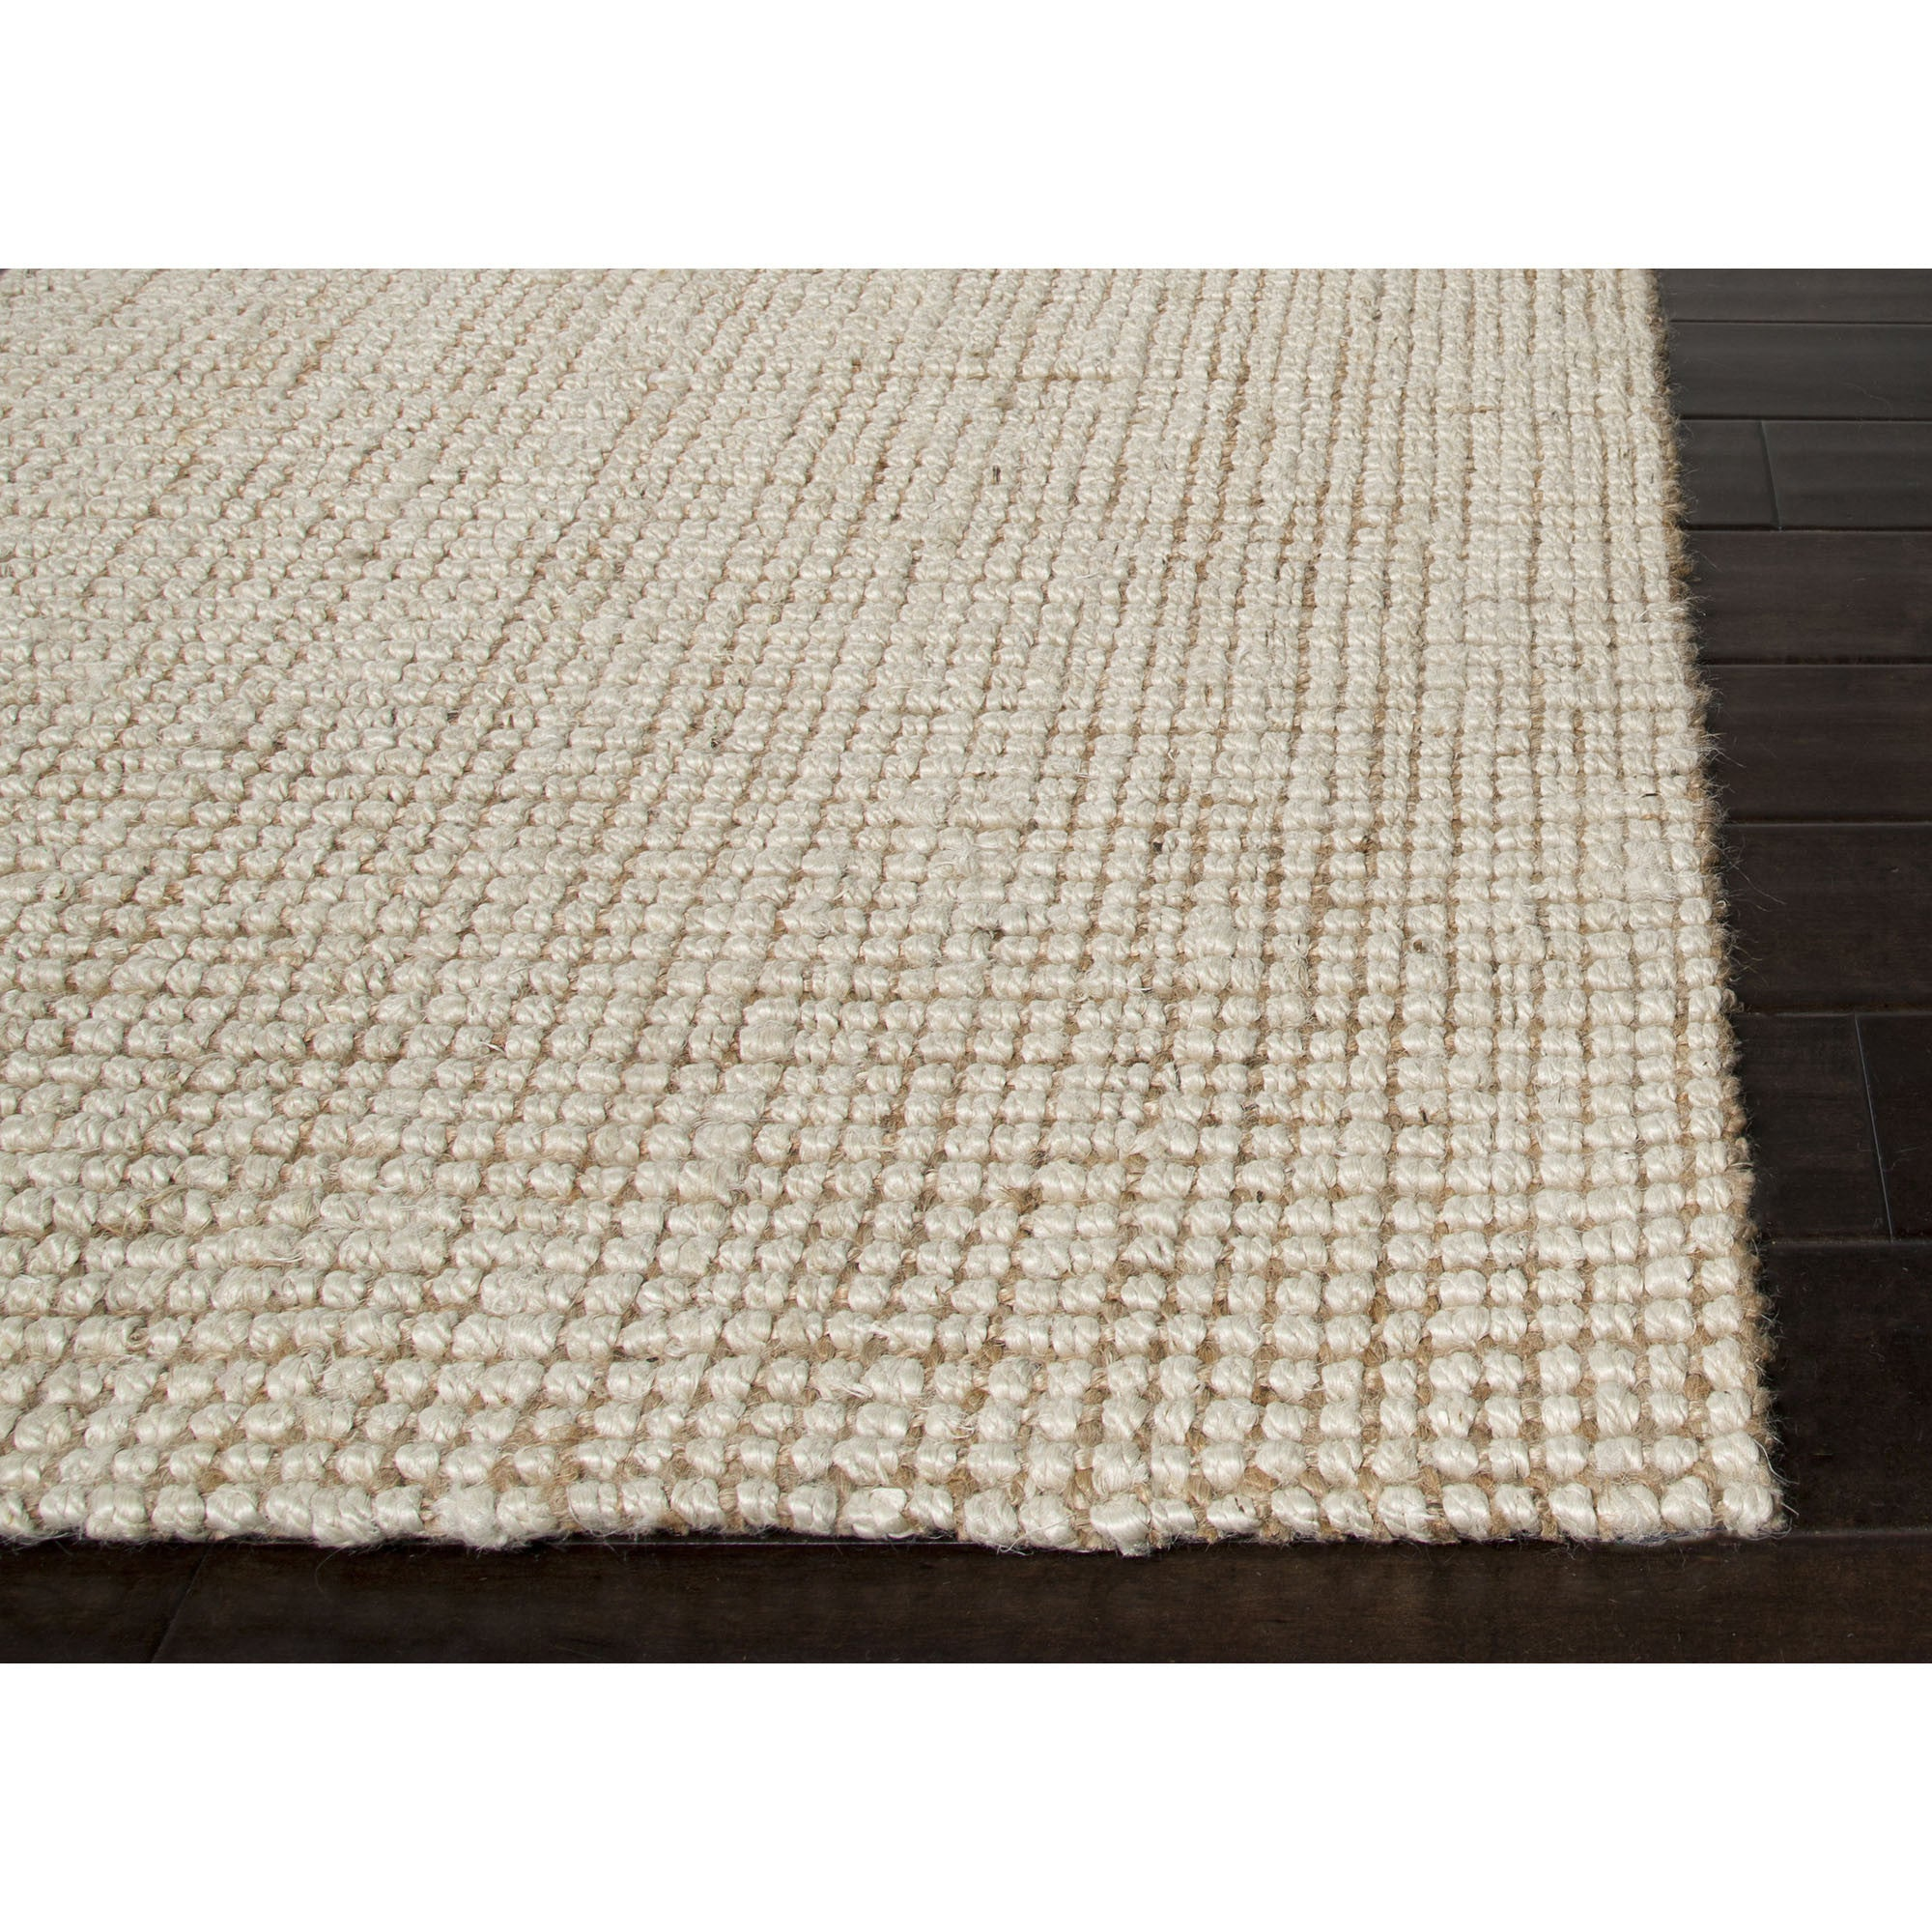 Dog Urine Jute Rug: Jaipur Rugs Naturals Solid Pattern Ivory/White Jute Area